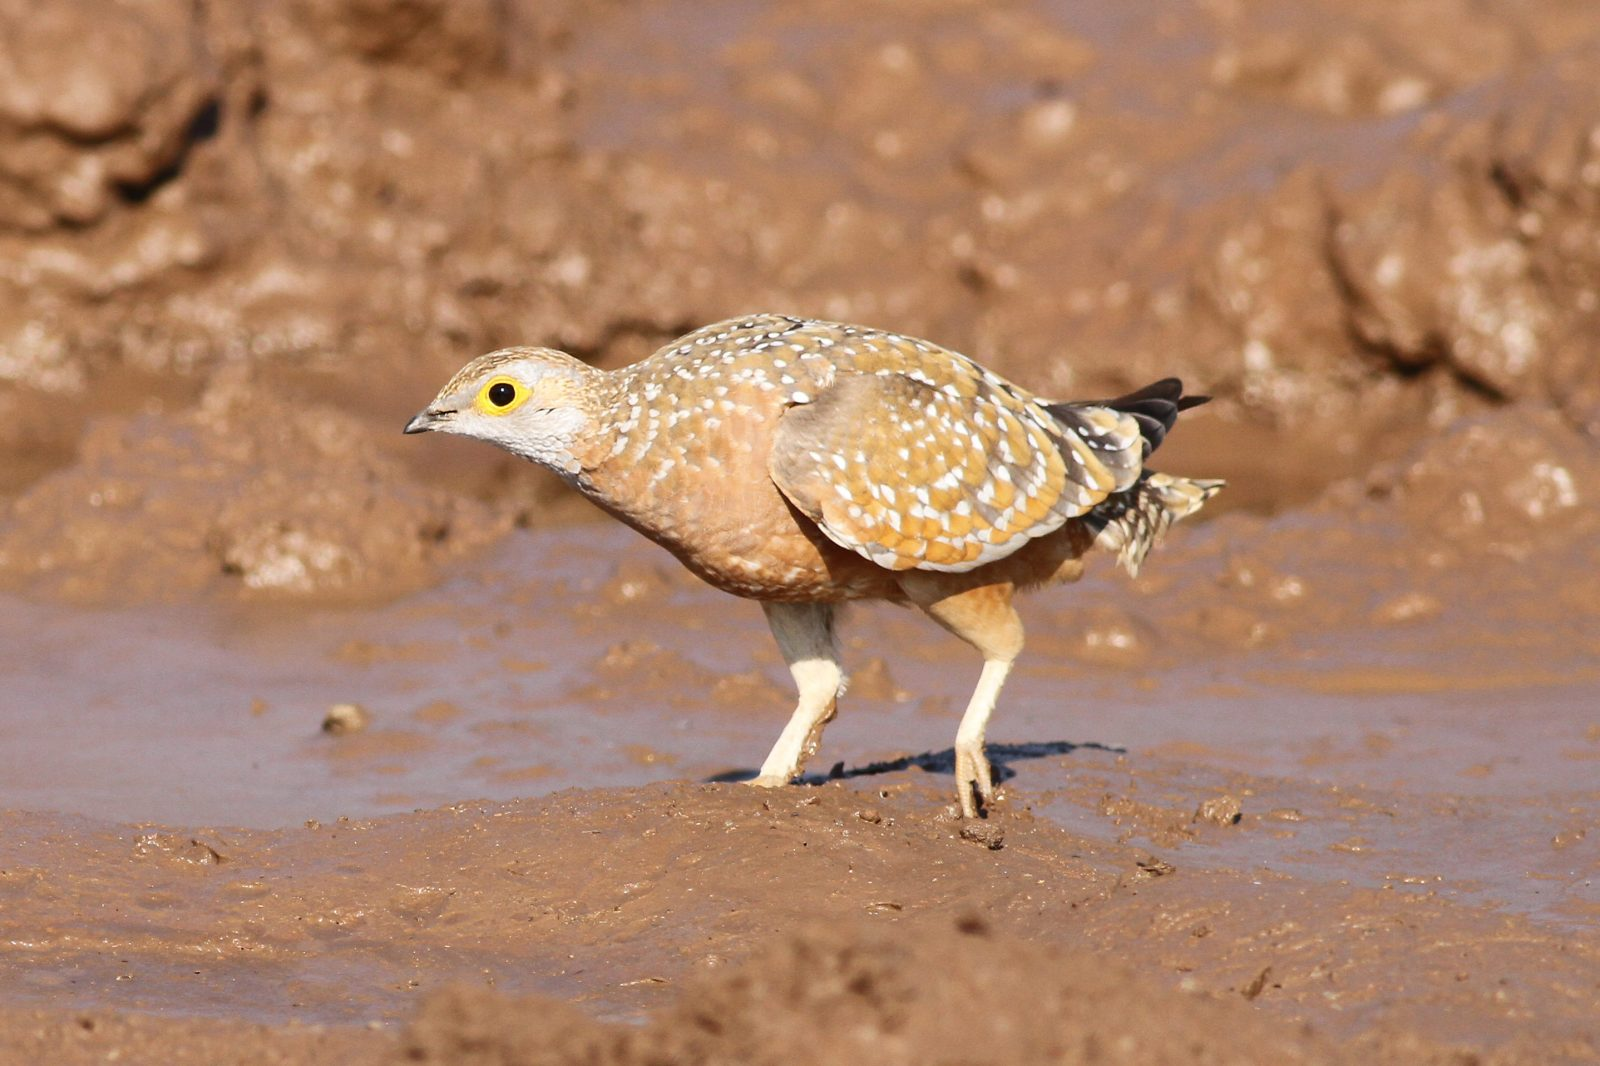 Sandgrouse. Photo credit: Derek Keats. https://commons.wikimedia.org/wiki/File:Burchell%27s_sandgrouse,_Pterocles_burchelli,_at_Mapungubwe_National_Park,_Limpopo,_South_Africa_(17358277633).jpg